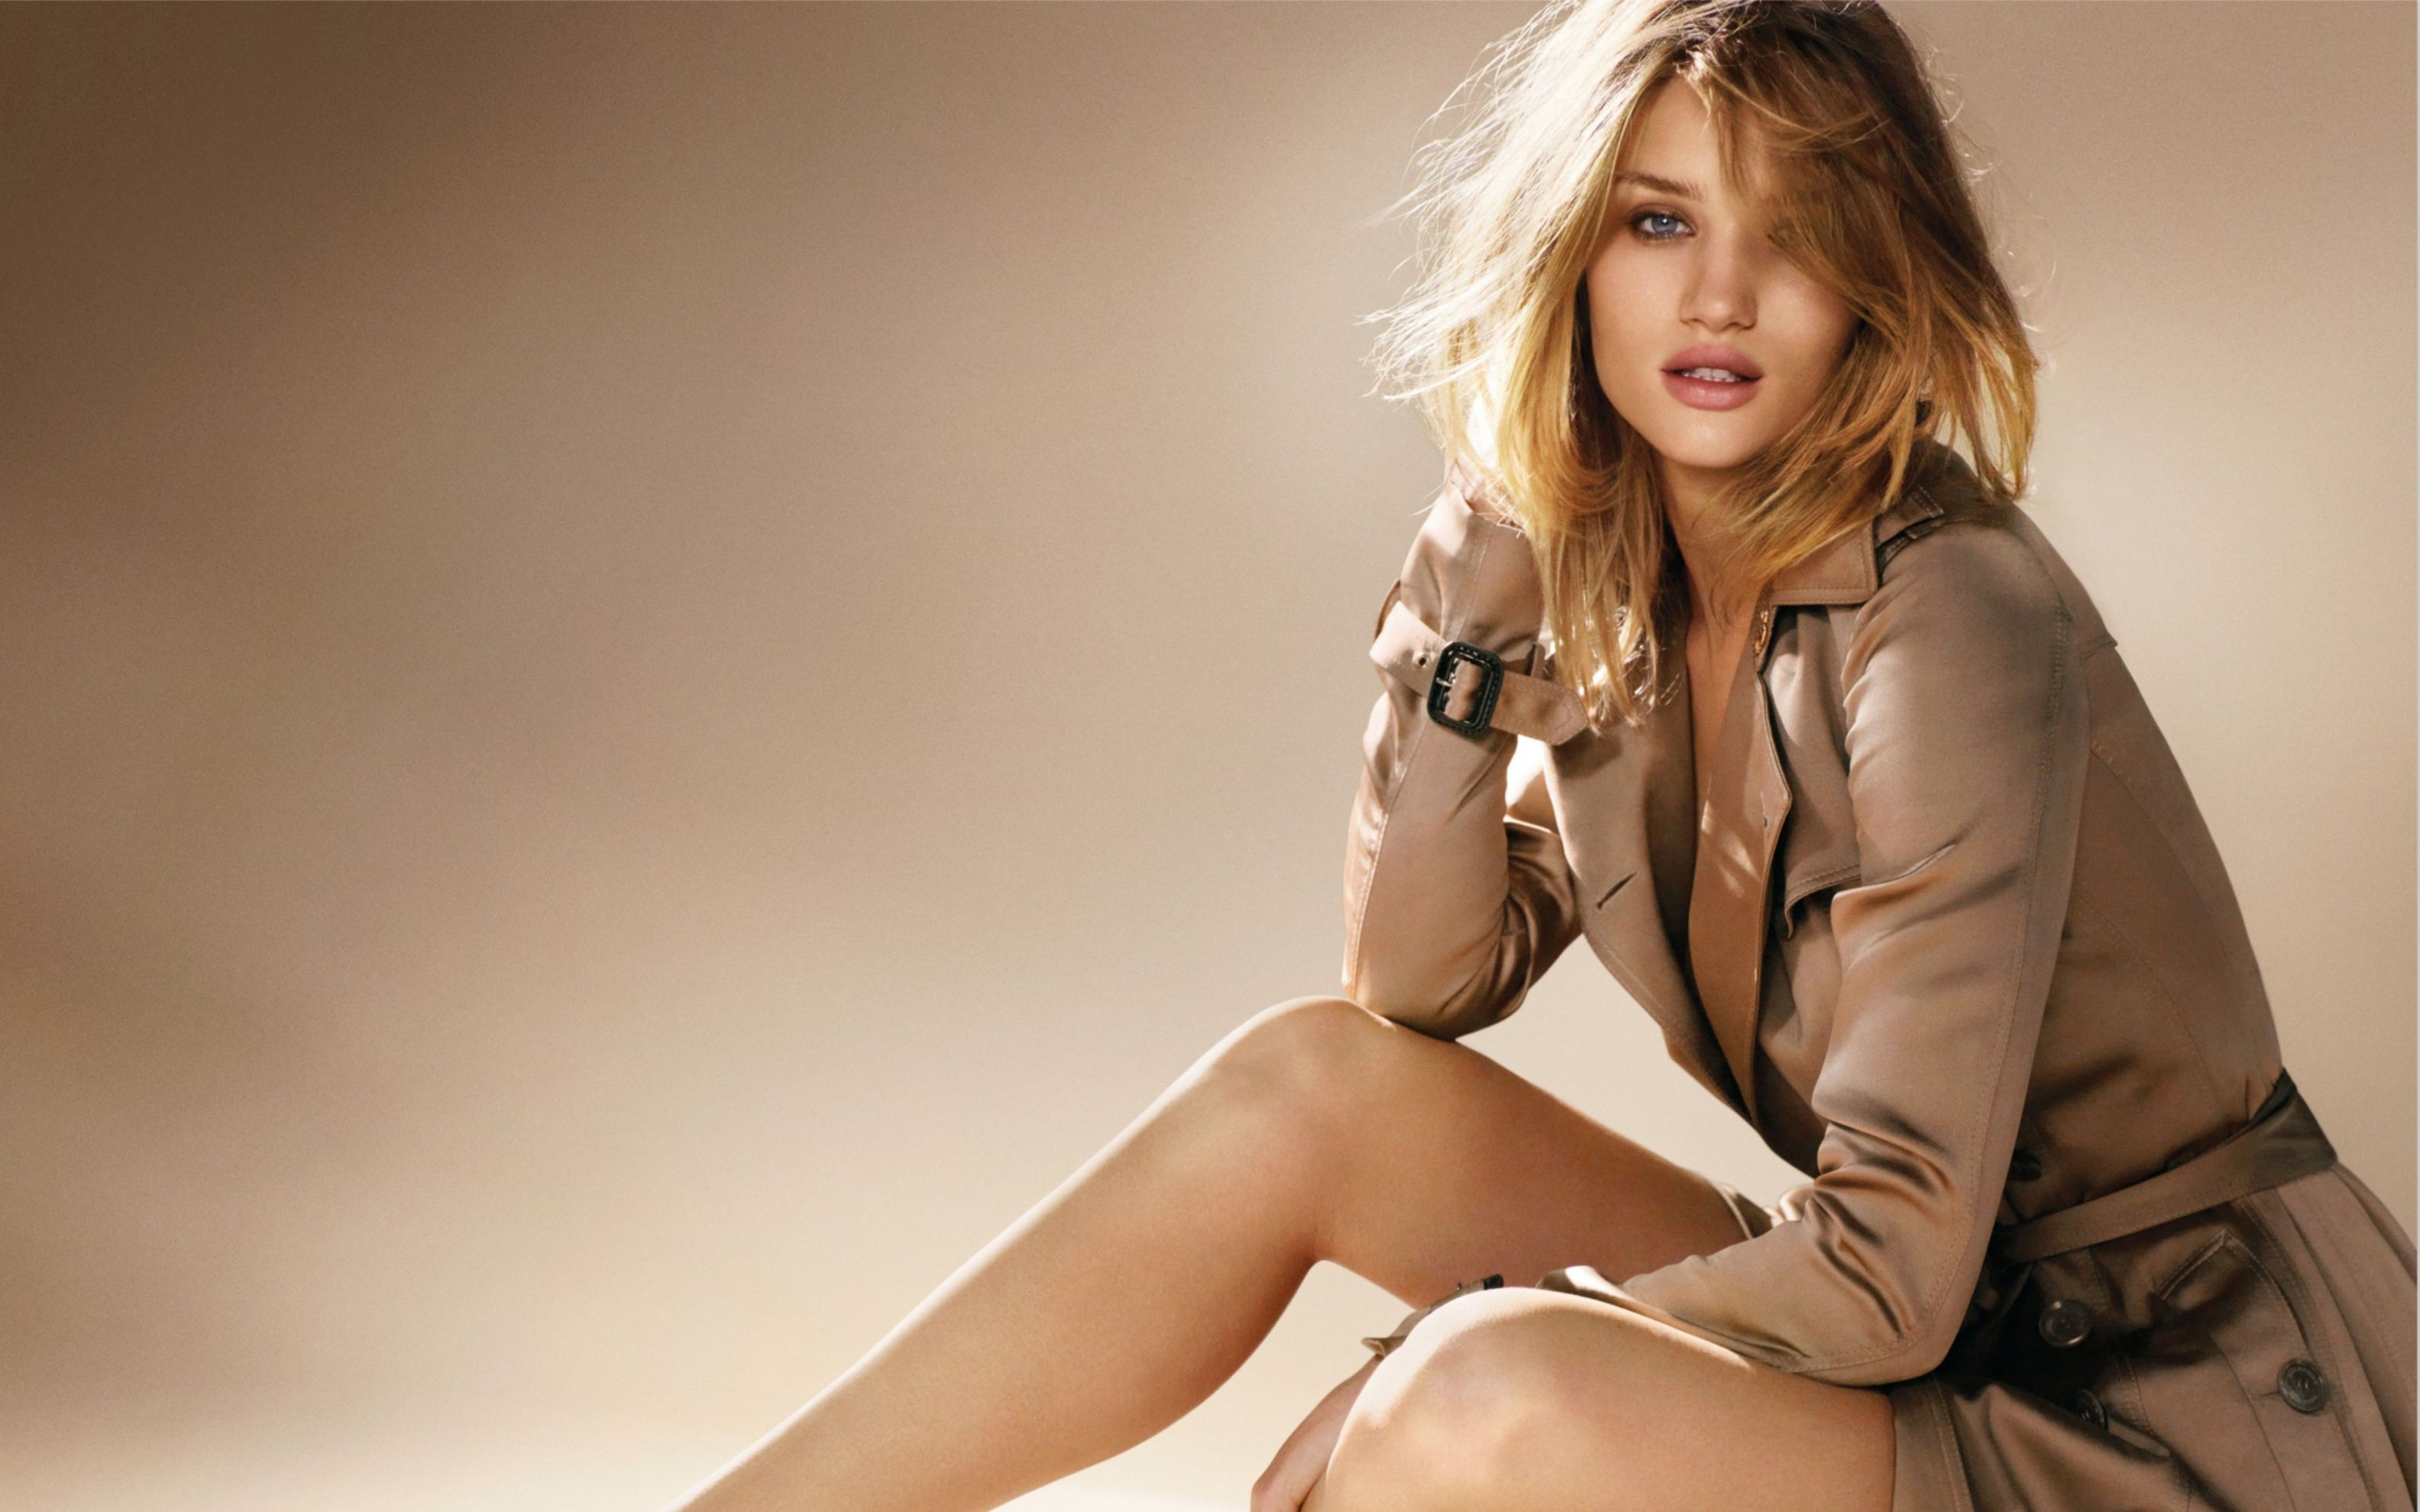 Download free HD Rosie Huntington Whiteley 2016 Wide Wallpaper, image